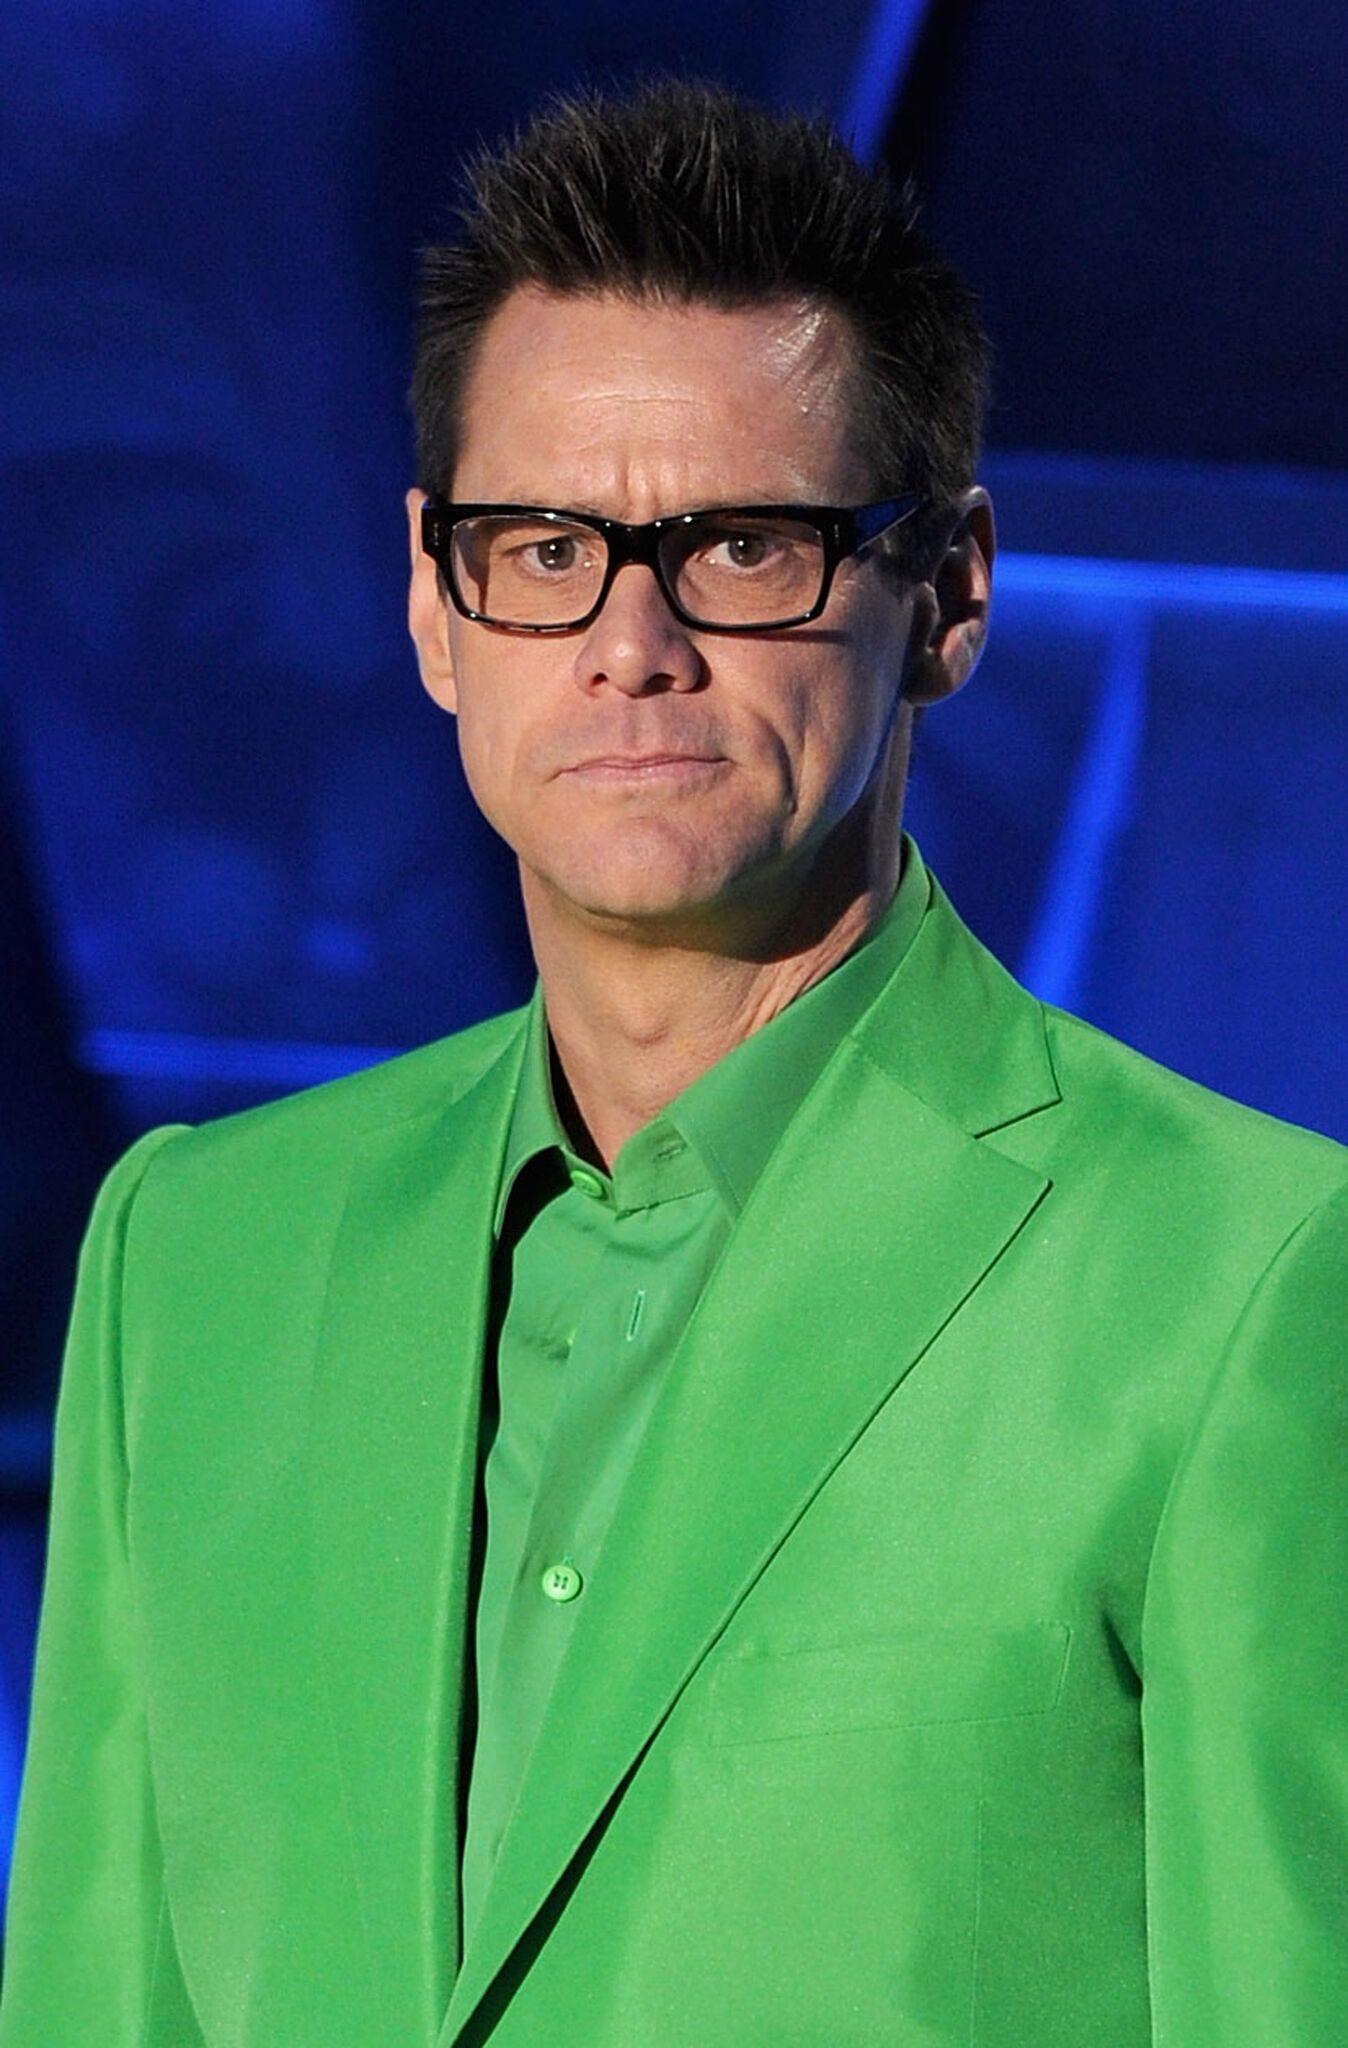 Jim Carrey speaks onstage during the 2011 MTV Movie Awards at Universal Studios' Gibson Amphitheatre | Getty Images